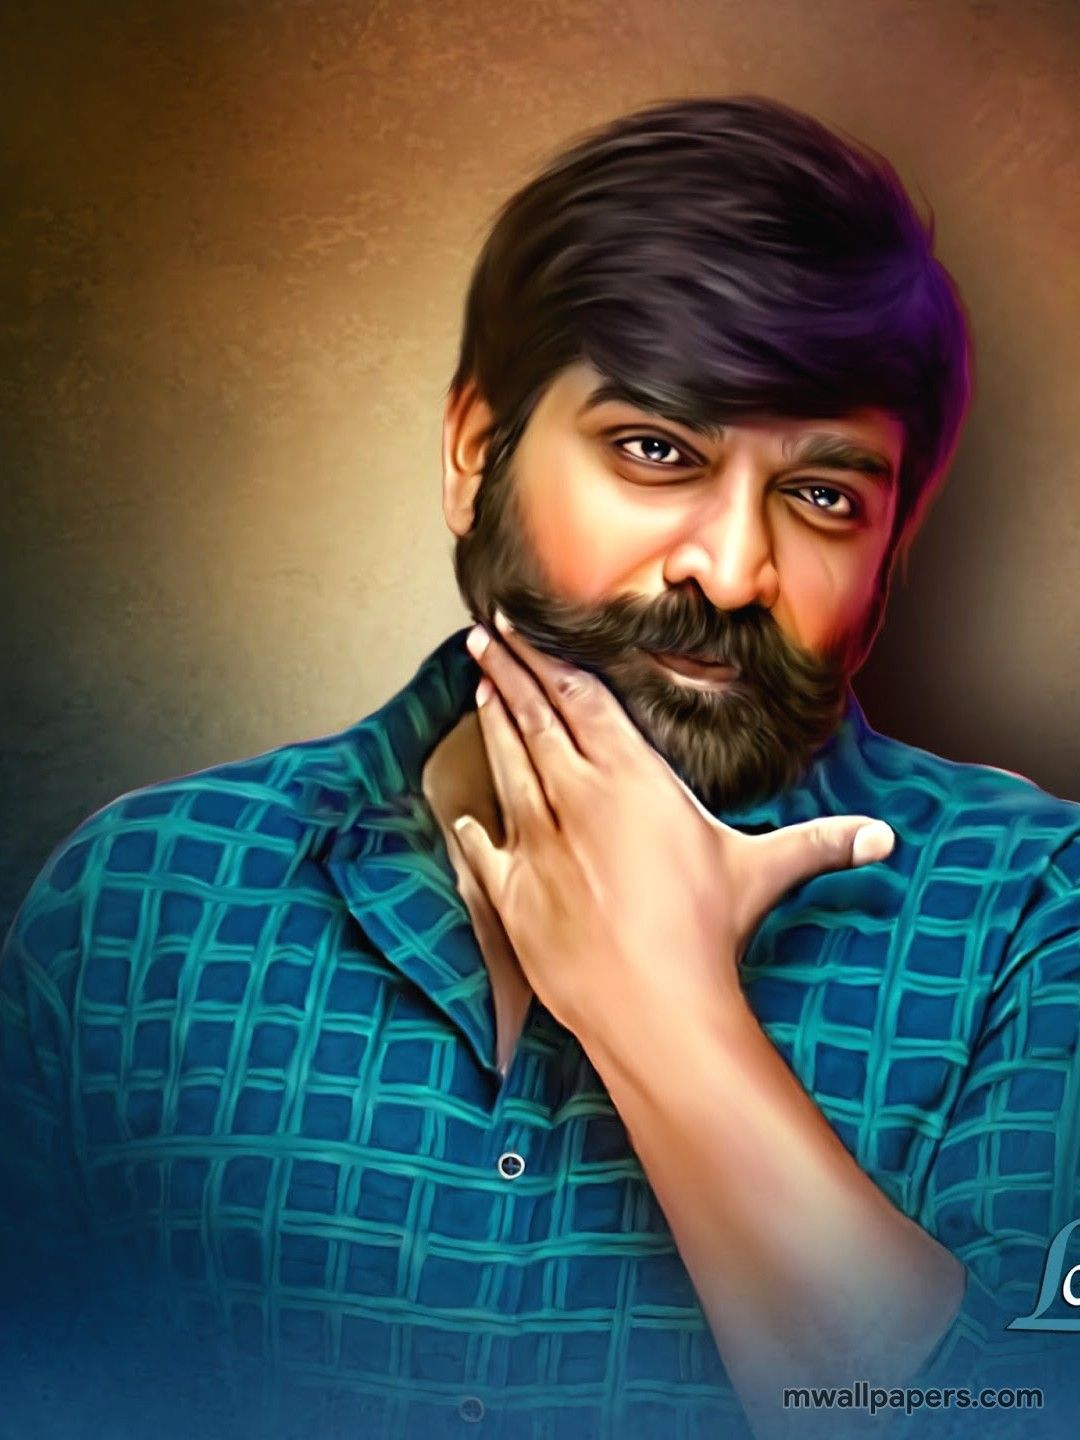 Vijay Sethupathi Hd Wallpapers Top Free Vijay Sethupathi Hd Backgrounds Wallpaperaccess A police inspector investigates into the mysterious death of a fellow officer and discovers that a local crime boss is likely responsible. vijay sethupathi hd wallpapers top